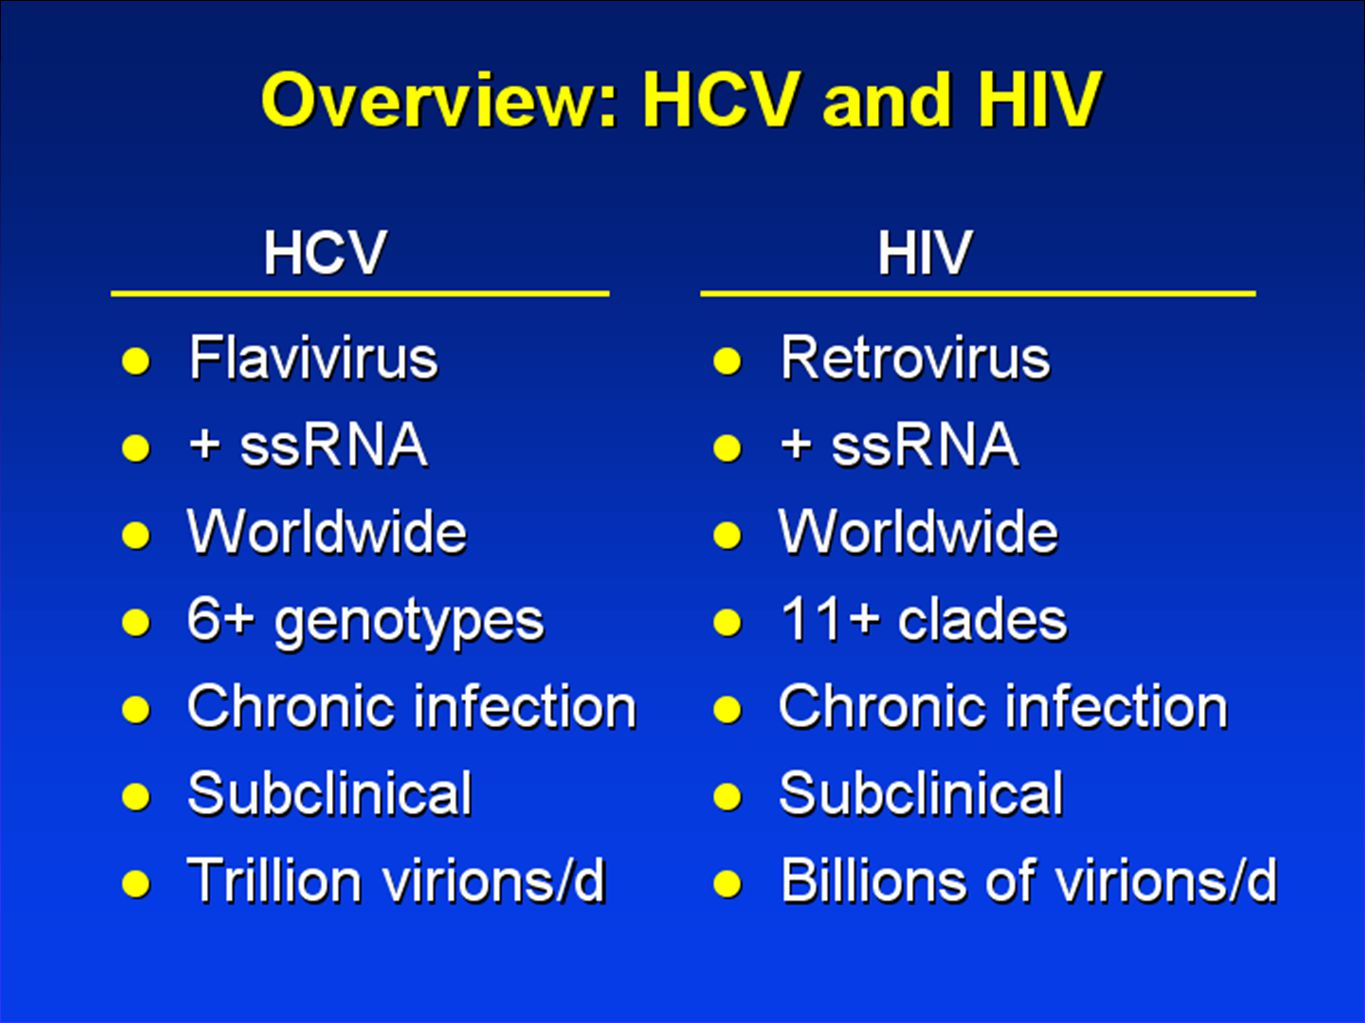 Activated, HIV- cells t1/2 = 1.5 d Productive HIV+ cells, t1/2=1/2-1 d Free HIV t1/2= 30 min Macrophage t1/2= 14 d Latent Memory CD4+ HIV+ cell, T1/2>>>6 mo Latent, CD4+ HIV+ cell, t1/2= 8.5 d Long-lived CD4+ HIV+ cells, t1/2= 6 mo 93-99% 1% 1-7%